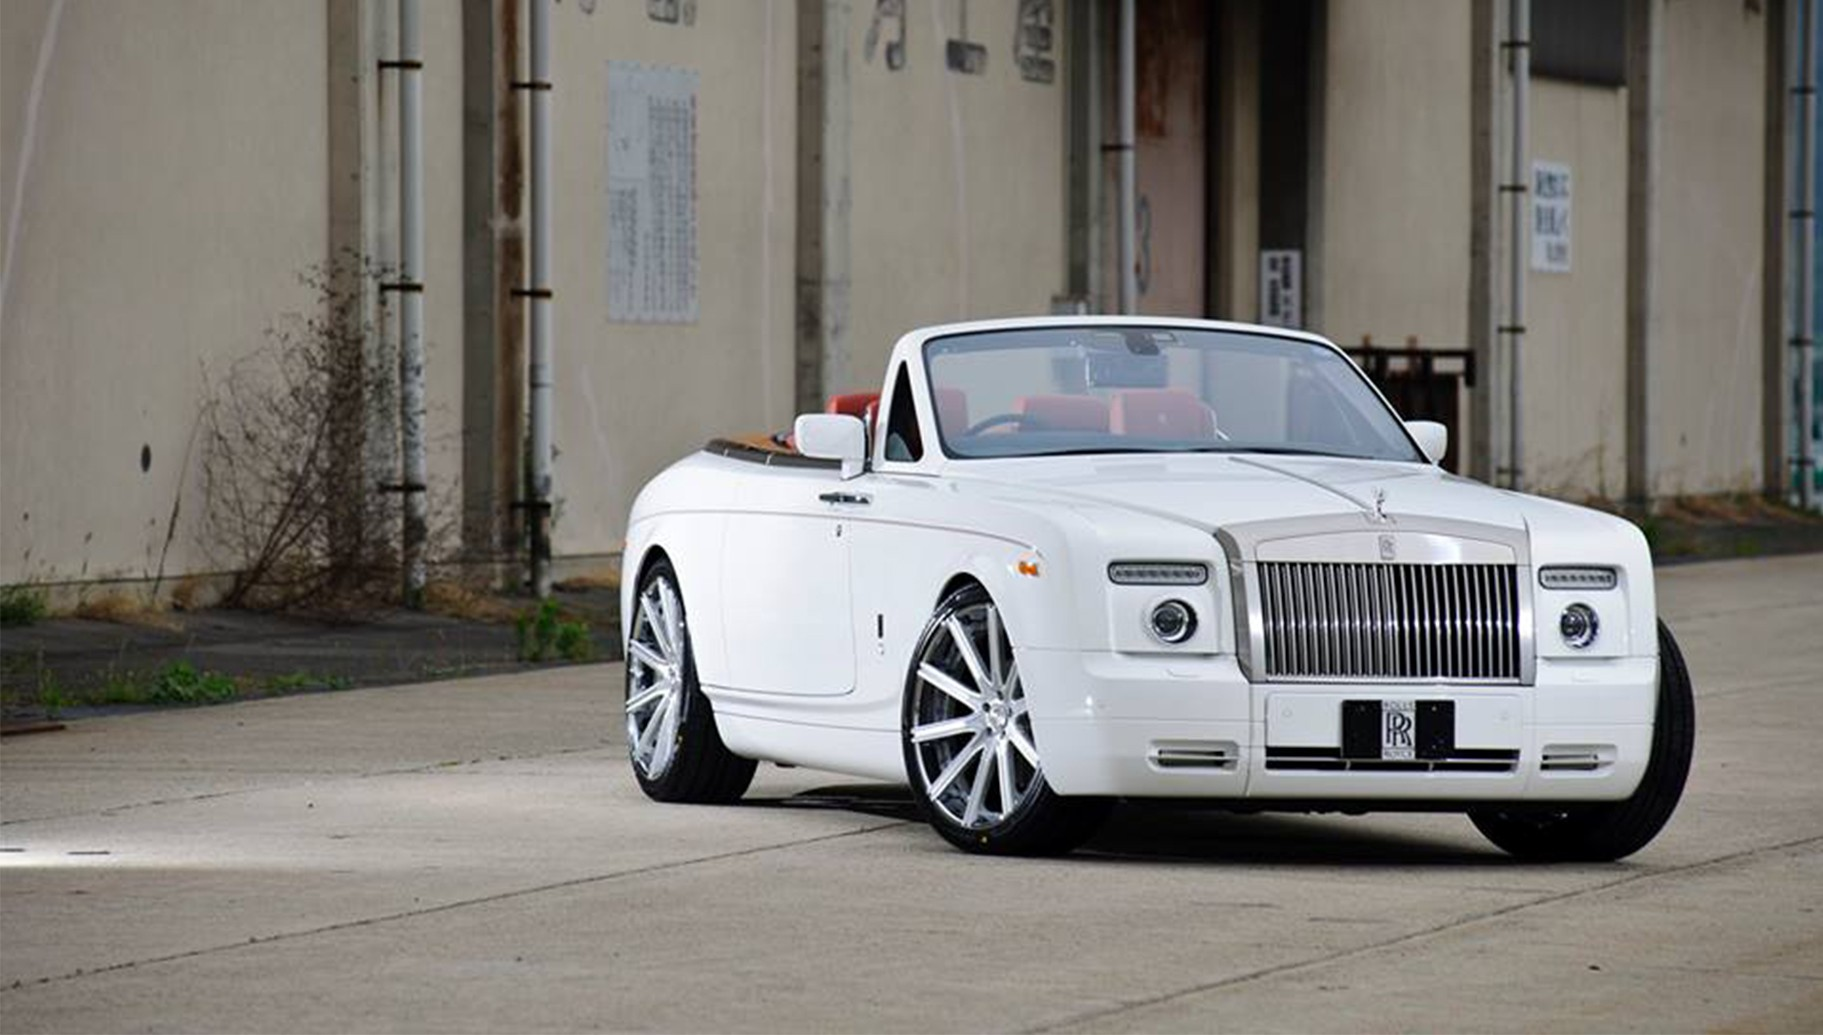 Brushed with Stainless Steel Chrome Lip LZ-109, on the Rolls Royce Phantom.